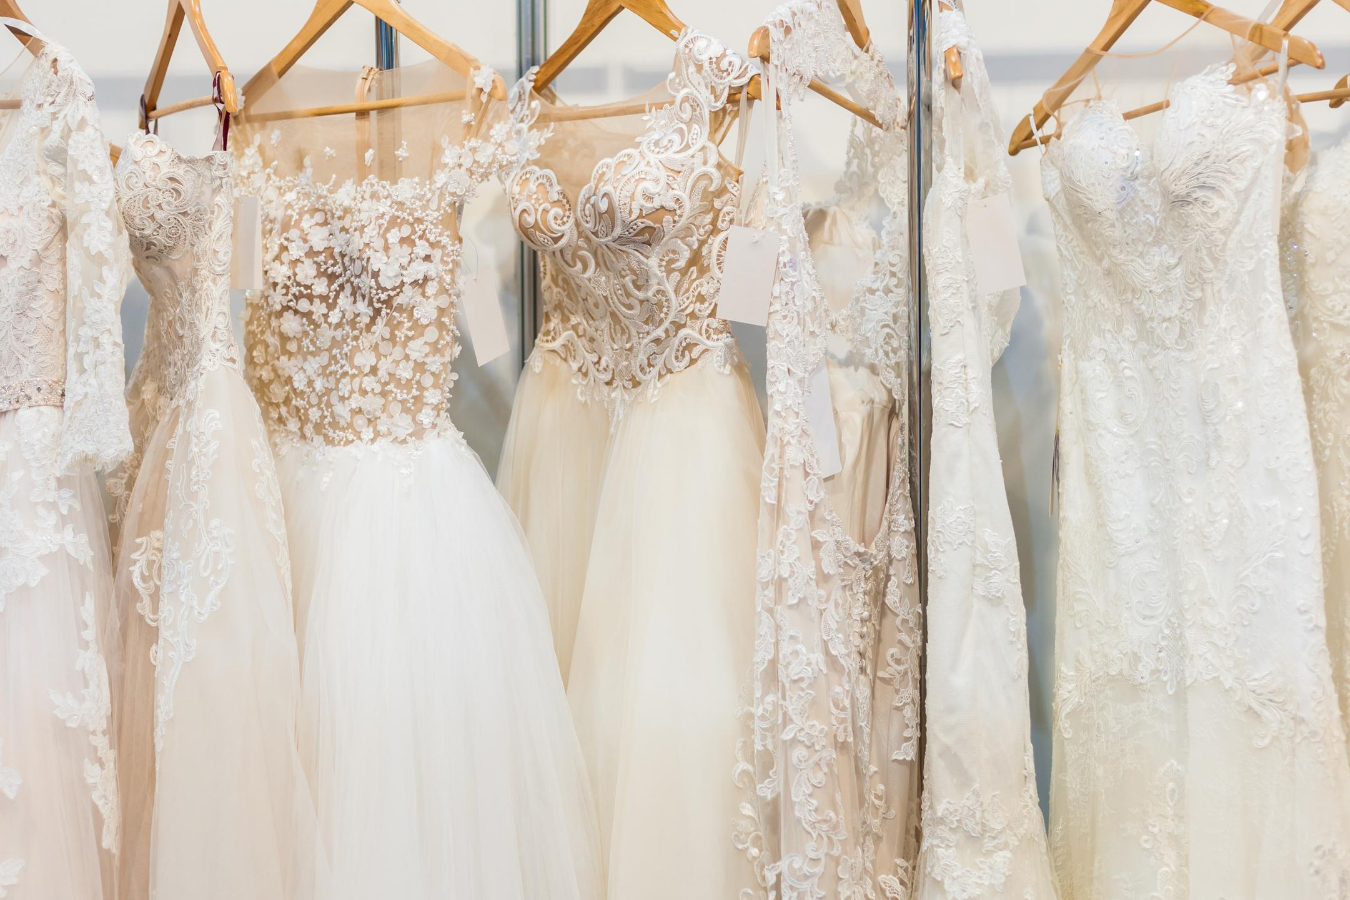 How to Find Your Dream Dress: 7 Tips from Our Bridal Gown Experts